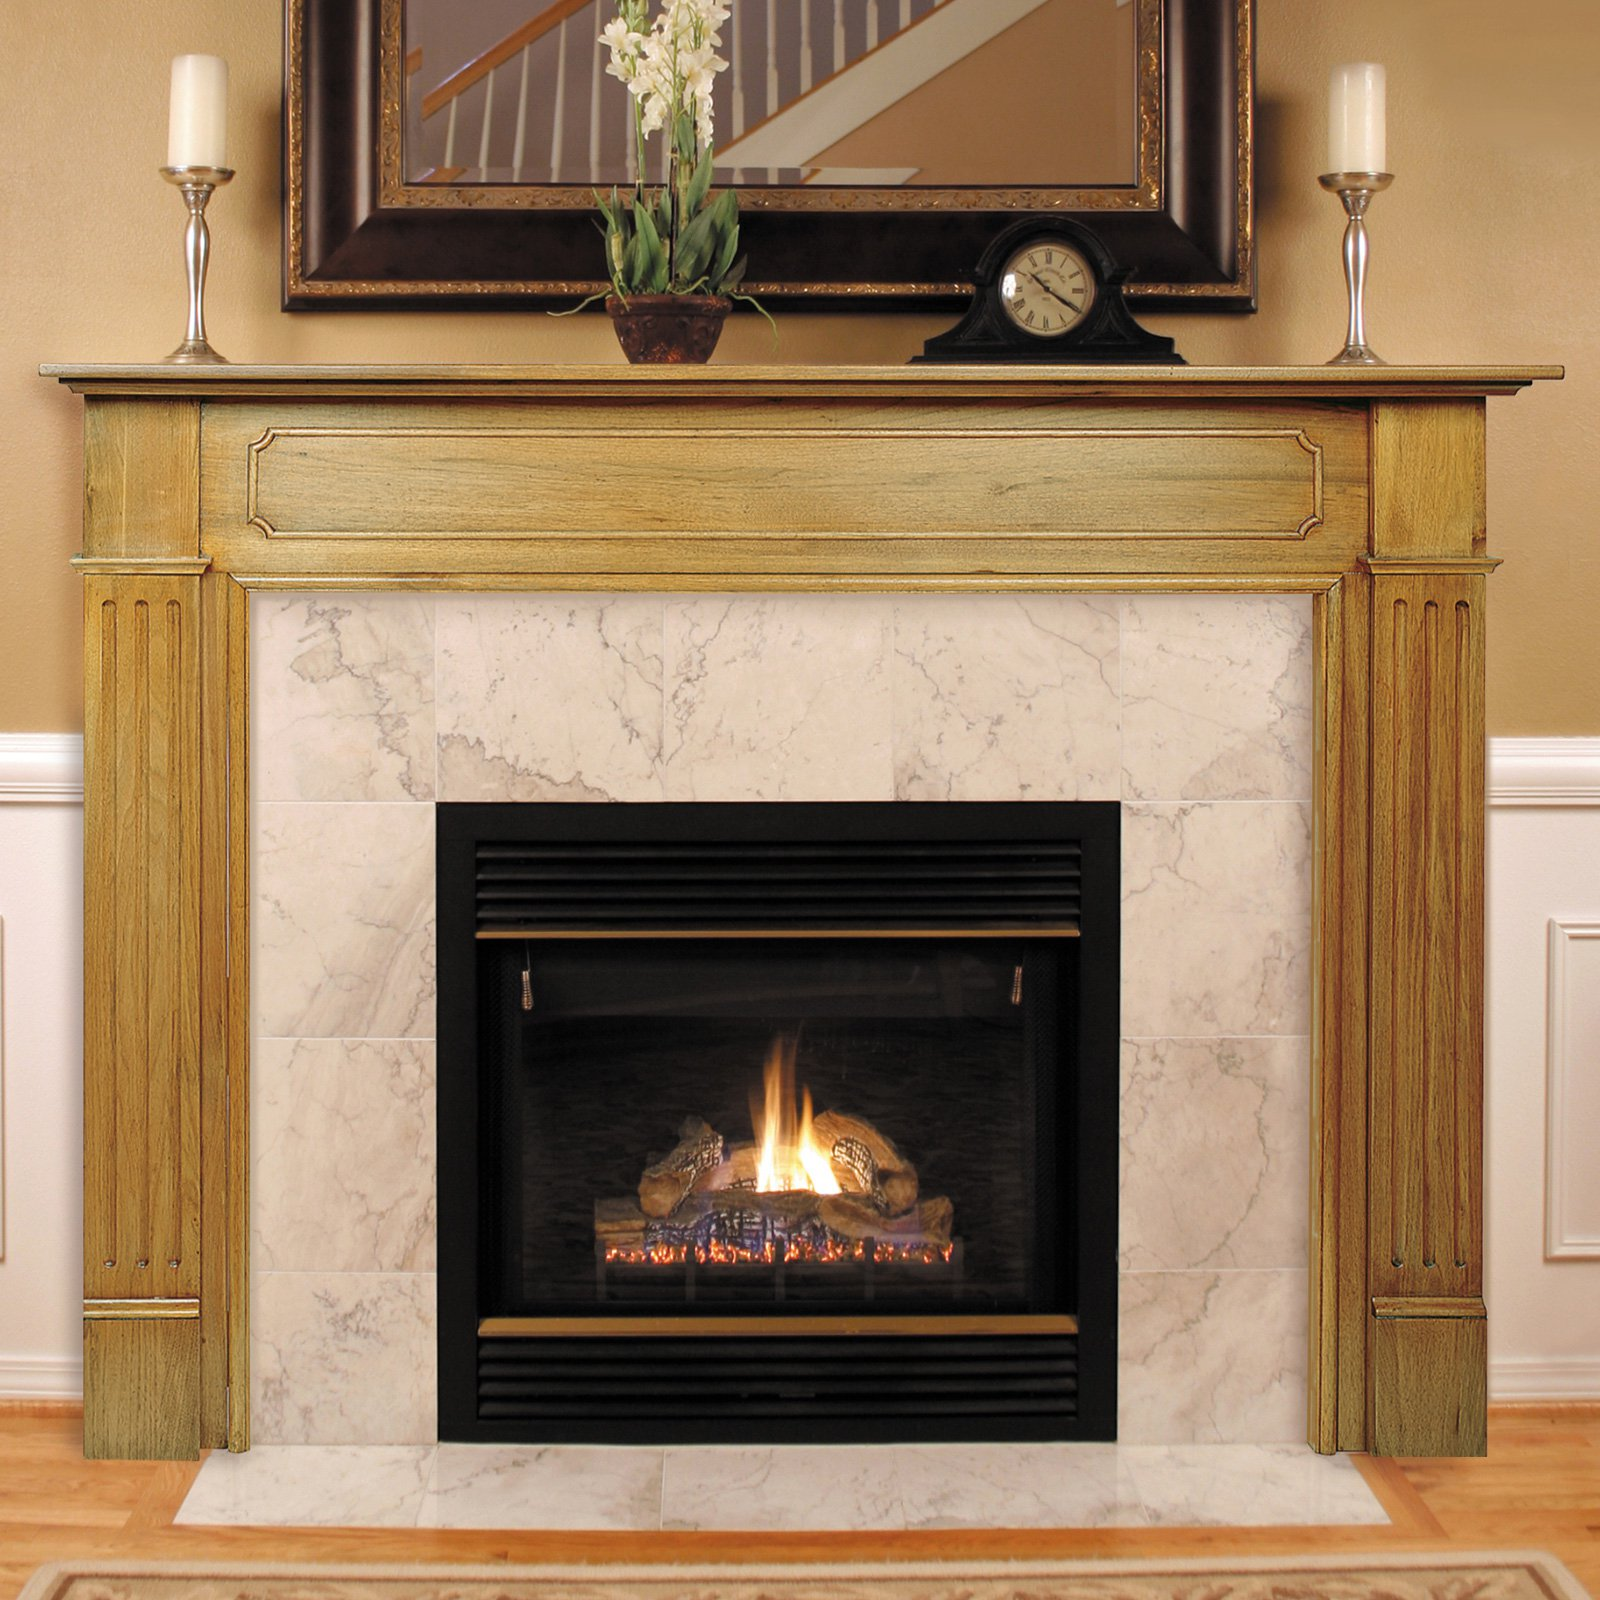 Lowes Fireplace Mantel | Unfinished Fireplace Mantels | Home Depot Mantel